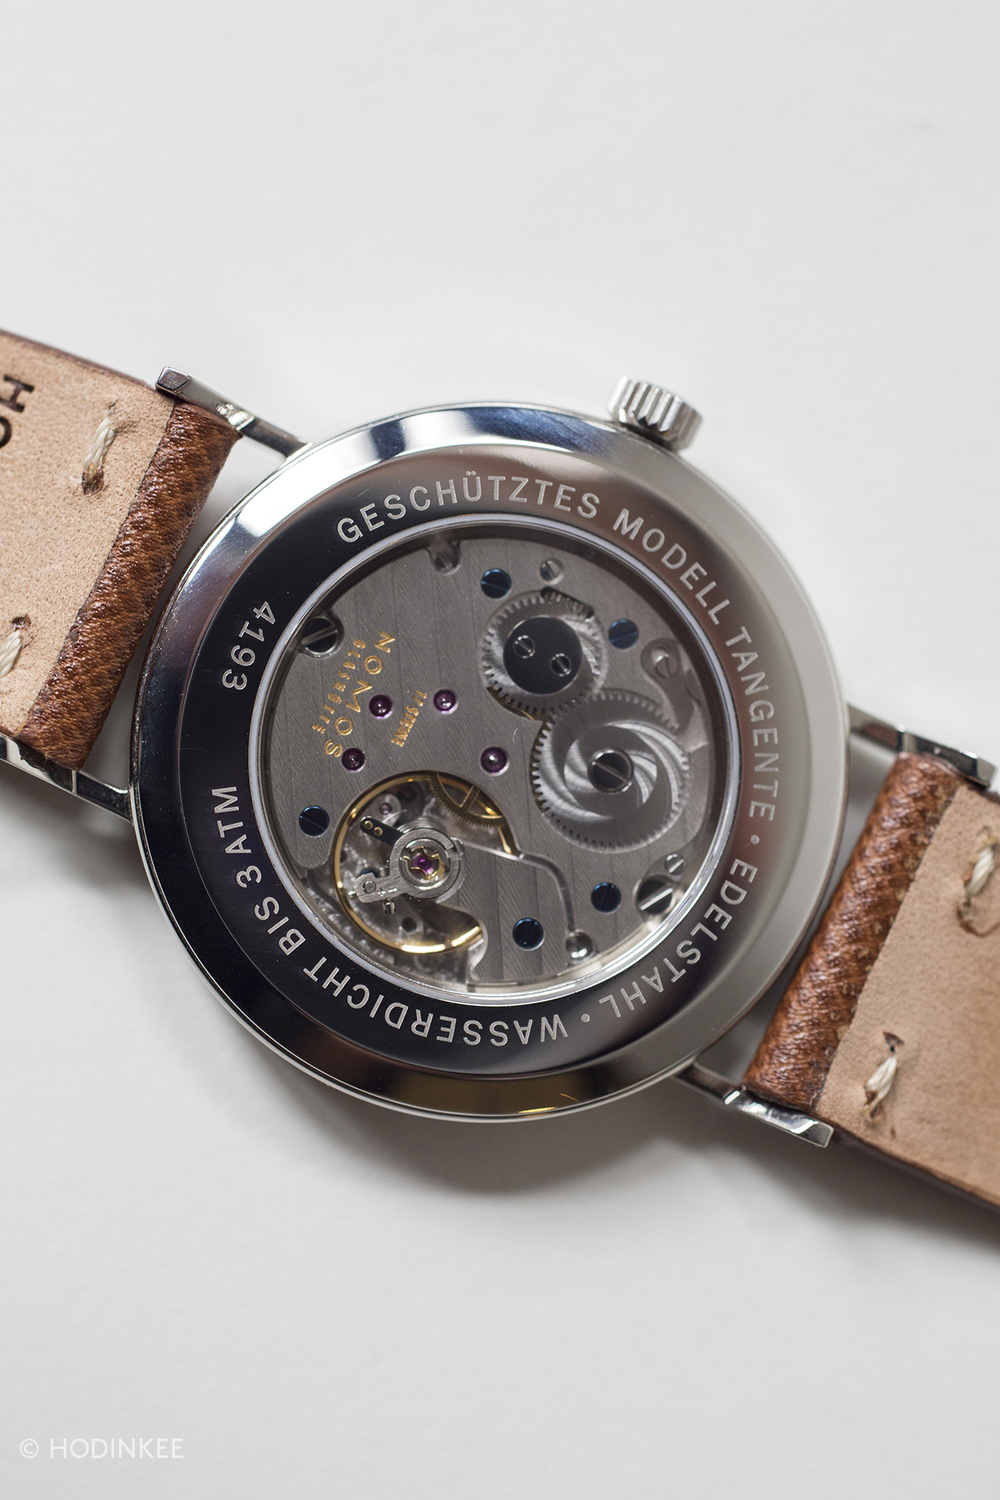 Nomos' caliber Alpha is based on a modified Peseux 7001. Nomos stopped using ebauches in 2005.